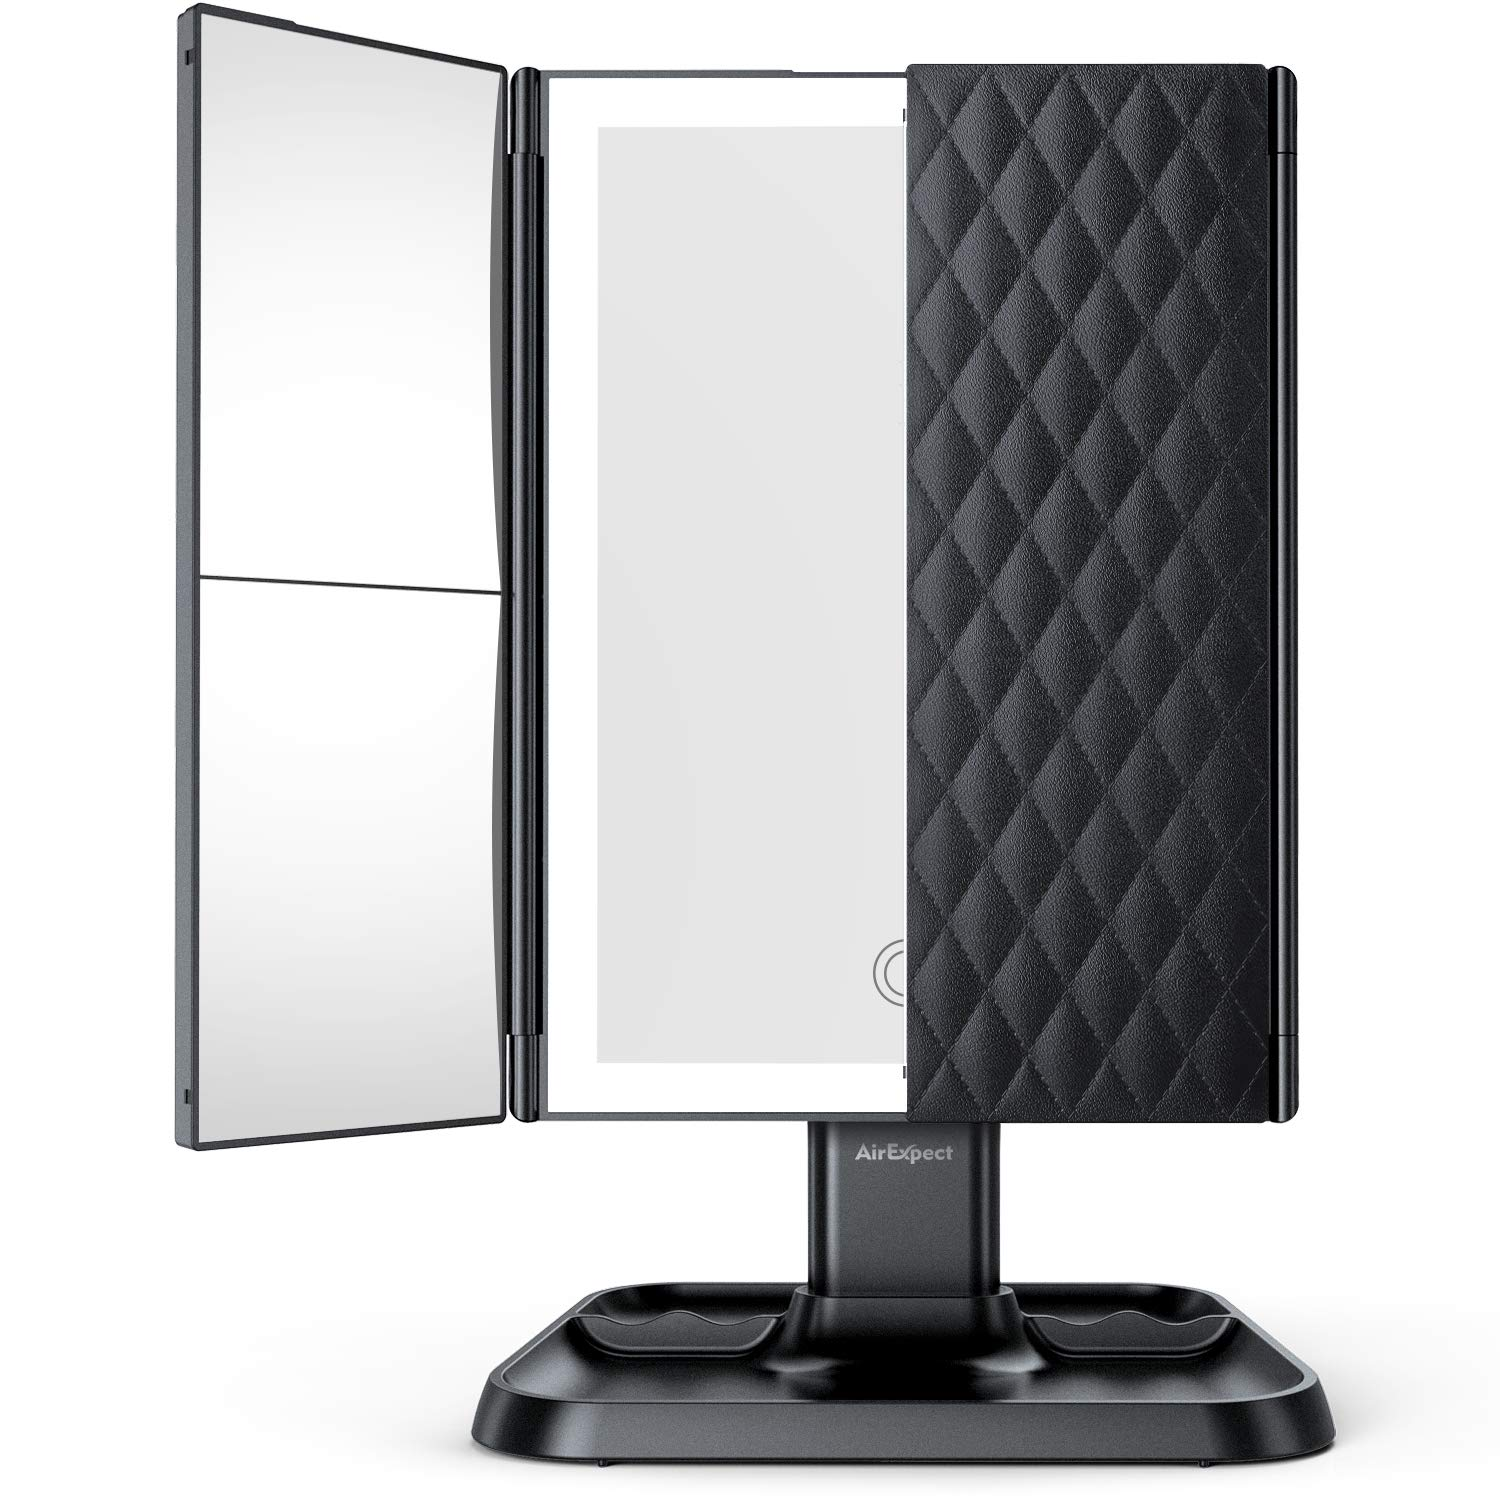 Makeup Mirror Vanity Mirror with Lights - 3 Color Lighting Modes 72 LED Trifold Mirror, Touch Control Design, 1x/2x/3x Magnification, Portable High Definition Cosmetic Lighted Up Mirror (Black)